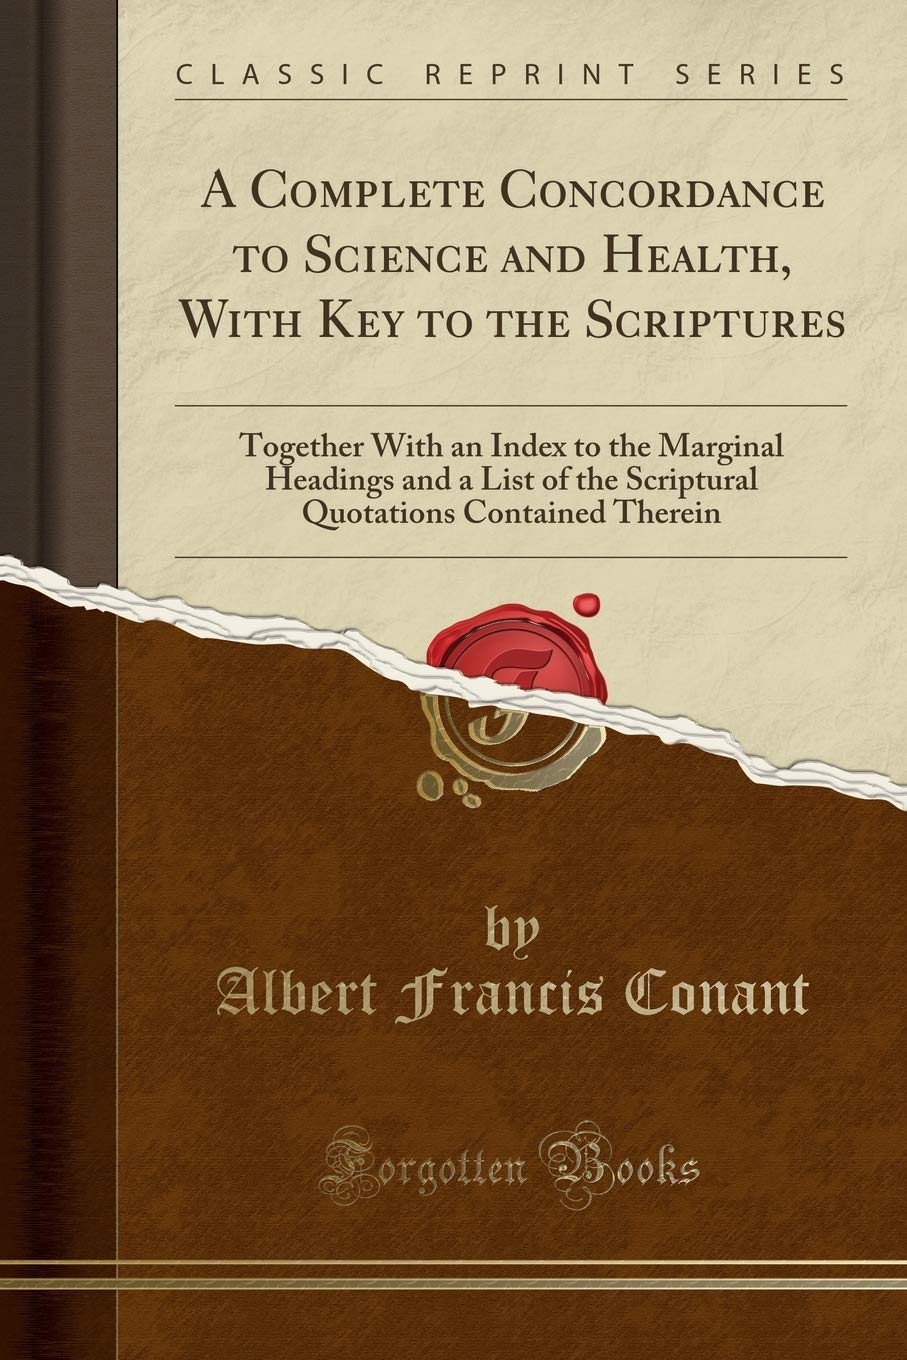 Download A Complete Concordance to Science and Health, With Key to the Scriptures: Together With an Index to the Marginal Headings and a List of the Scriptural Quotations Contained Therein (Classic Reprint) ebook